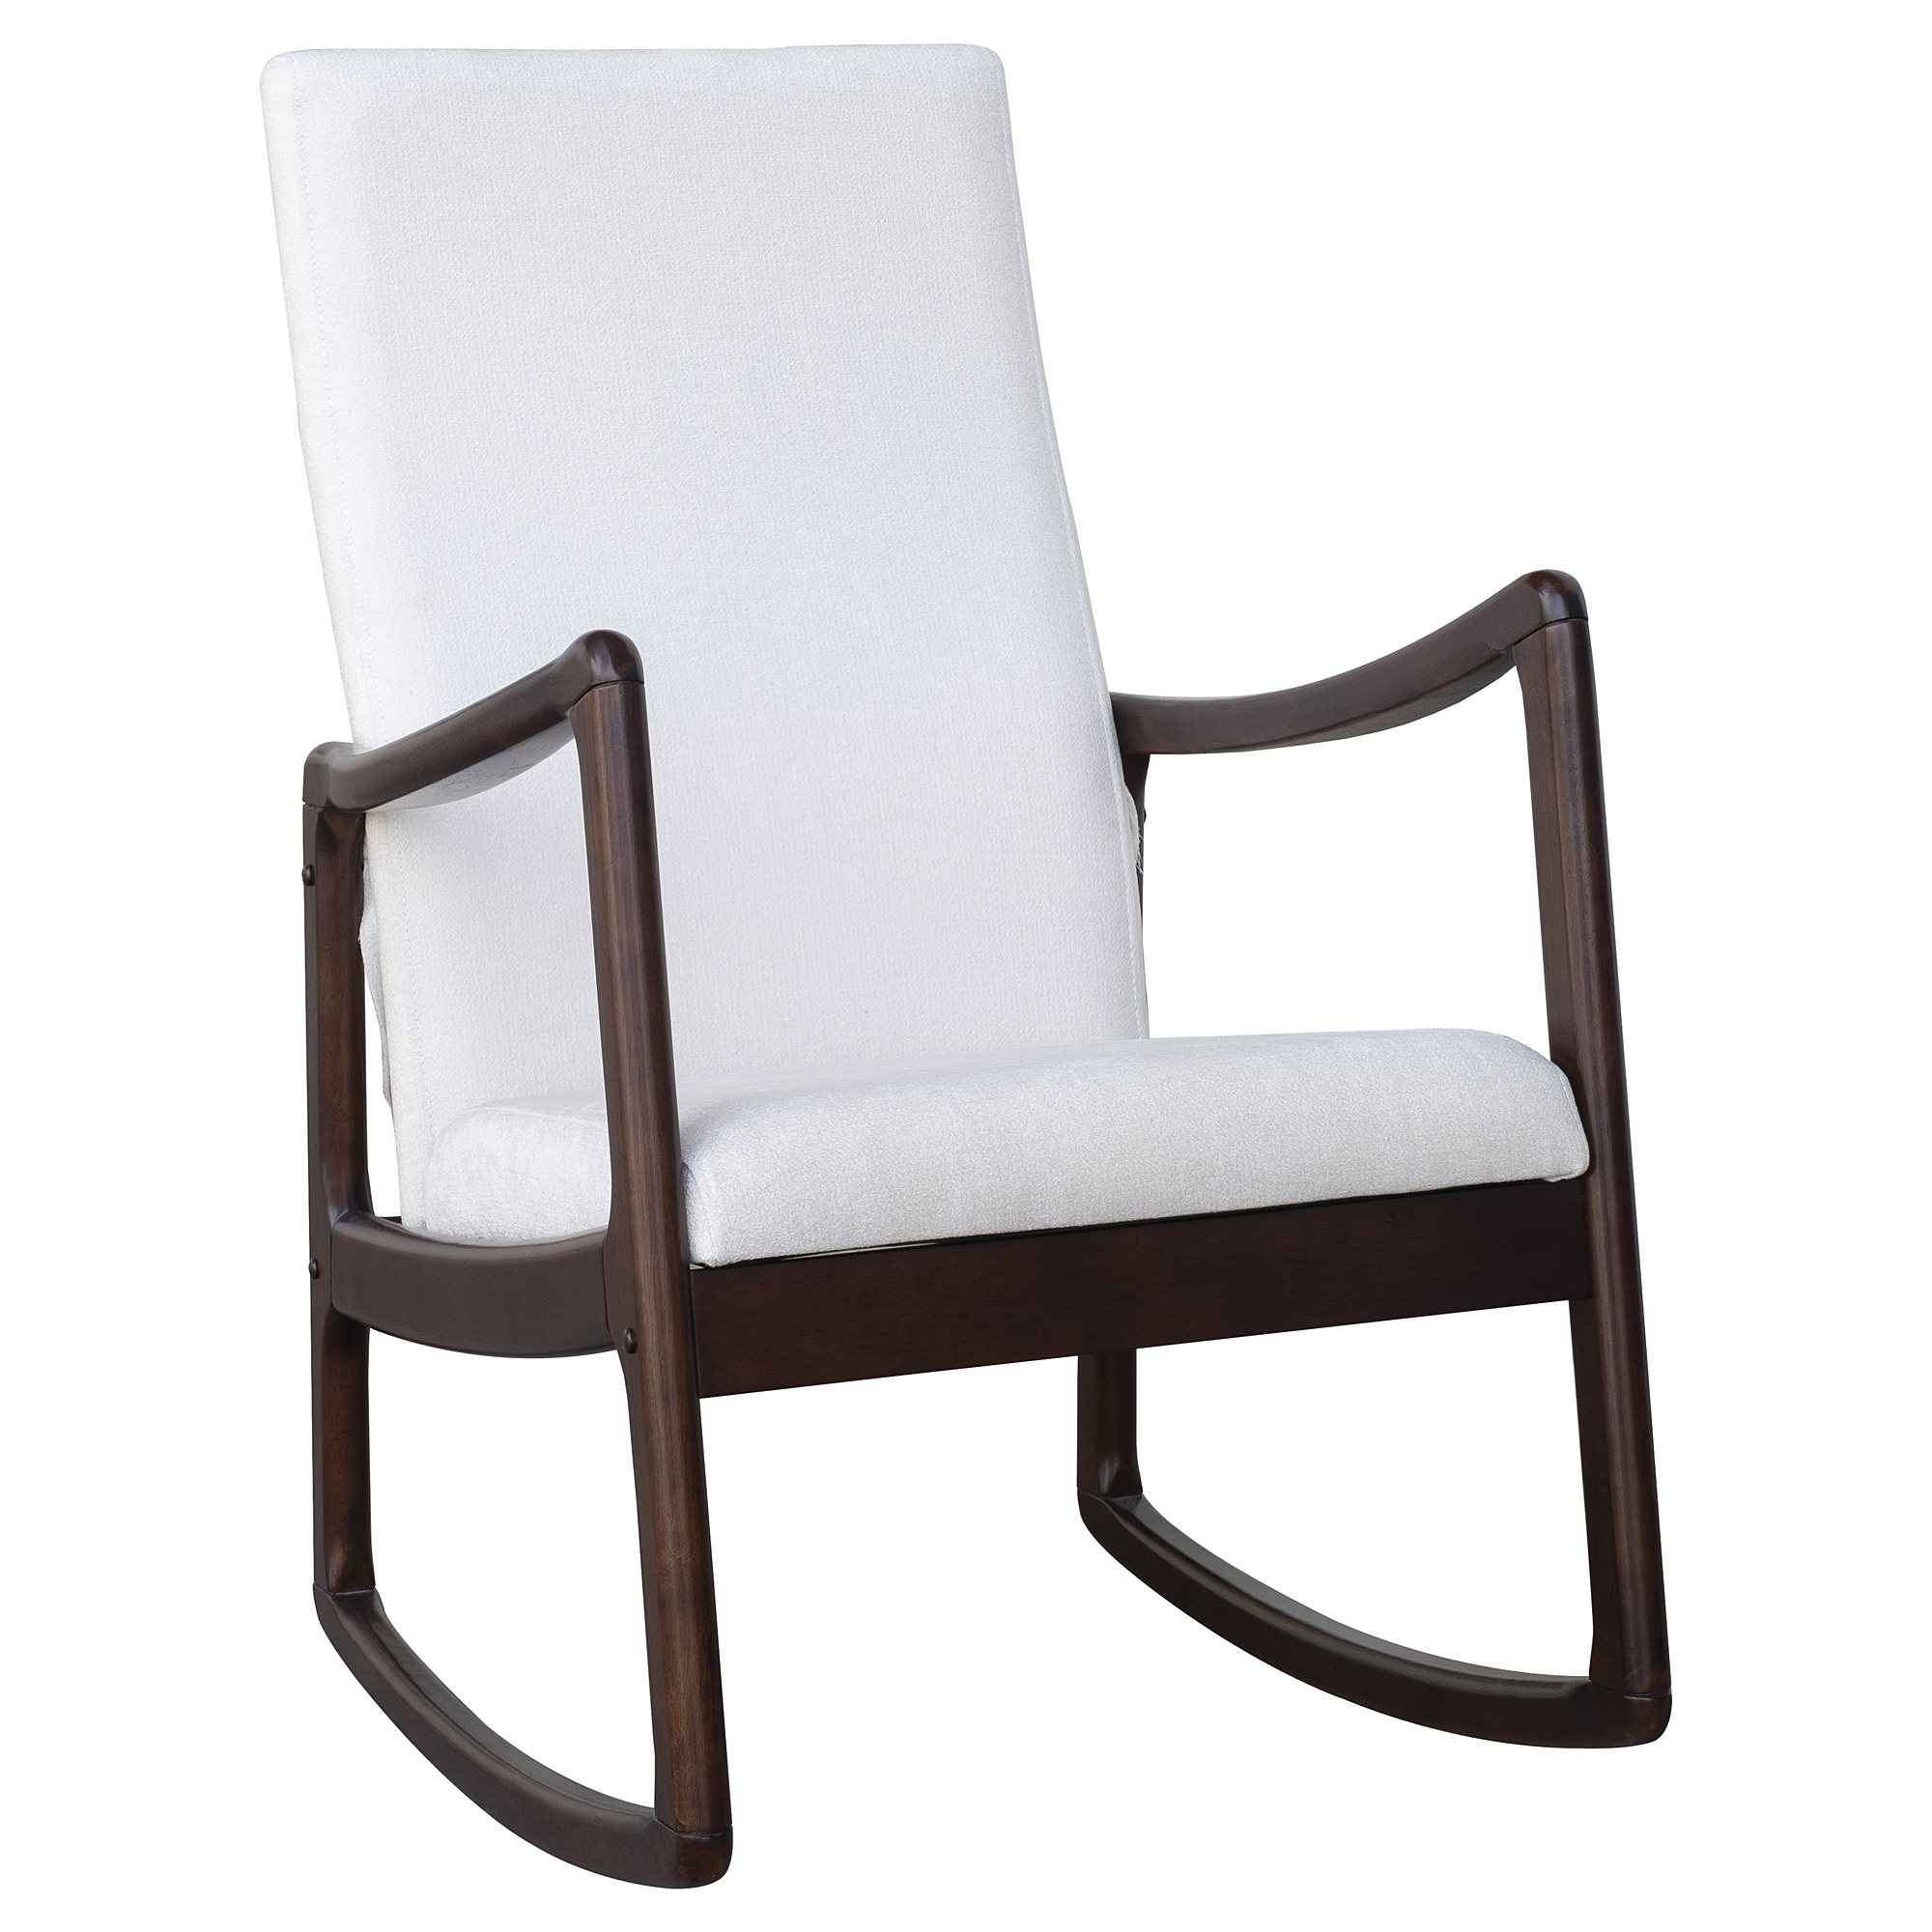 Aosom: Homcom Modern Wood Rocking Chair Indoor Porch Furniture For Living  Room  Coffee Brown/white With Cushion | Rakuten Inside Traditional Indoor Acacia Wood Rocking Chairs With Cushions (#1 of 20)